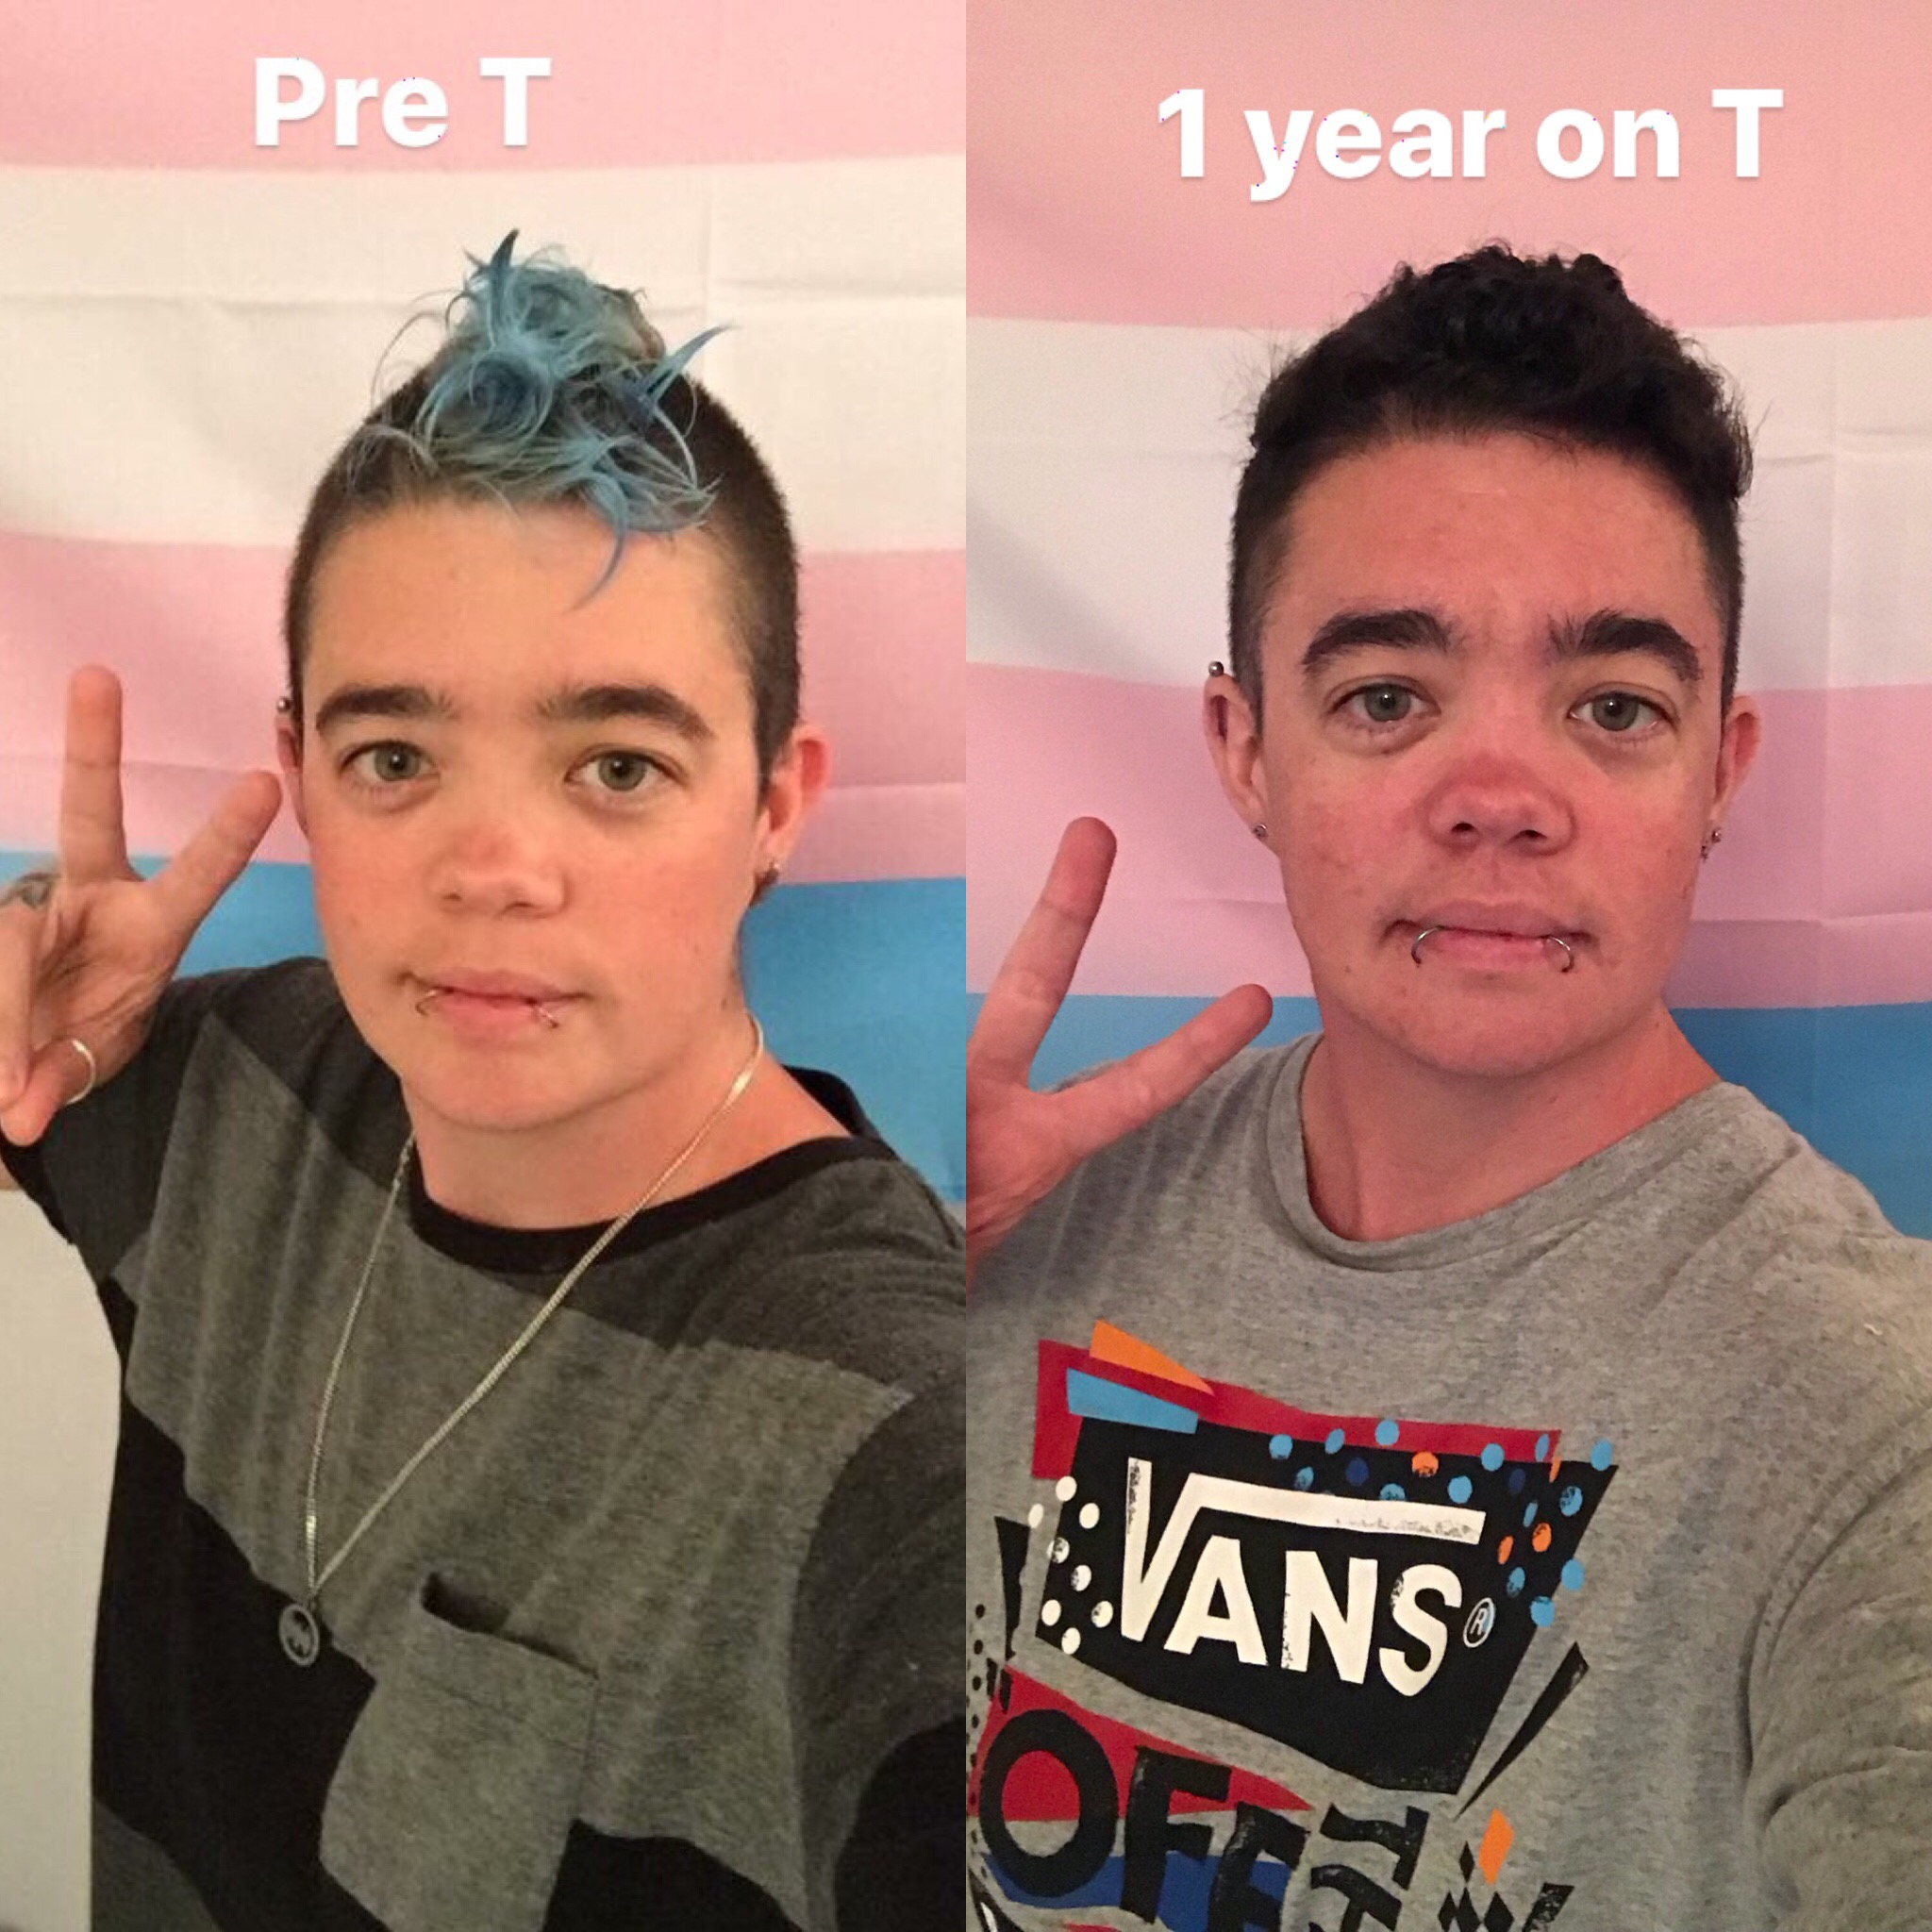 1yr on T comparrison